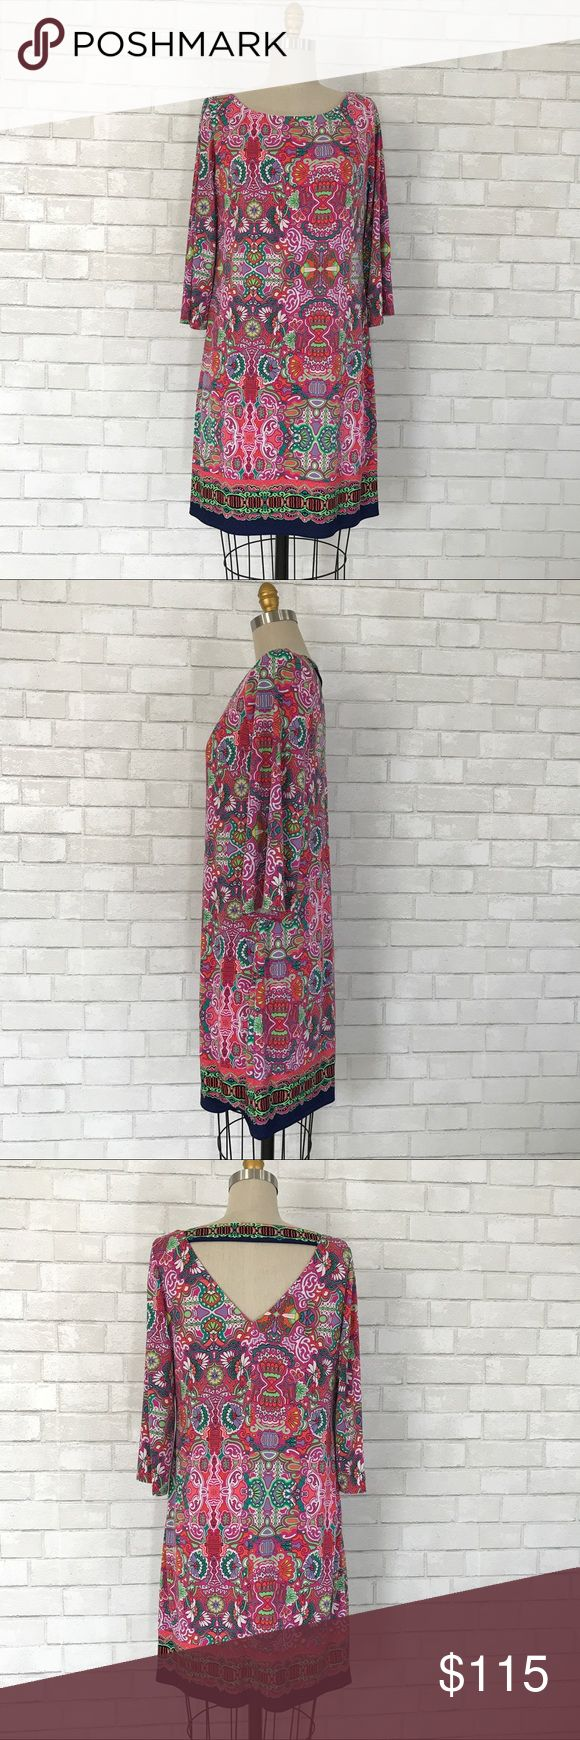 Laundry printed dress size M Stunning Printed Laundry dress  Size M, 95% Polyester 5%Spandex, full under lining, cut out back, no zipper pull on 3/4 sleeves   Ⓜ️Chest 38 Ⓜ️Length 36 Ⓜ️Sleeves 18  ✅Bundle and save  ✅🚭 🚫No Trading 🙅🏻 Poshmark rules only‼️ Laundry by Shelli Segal Dresses